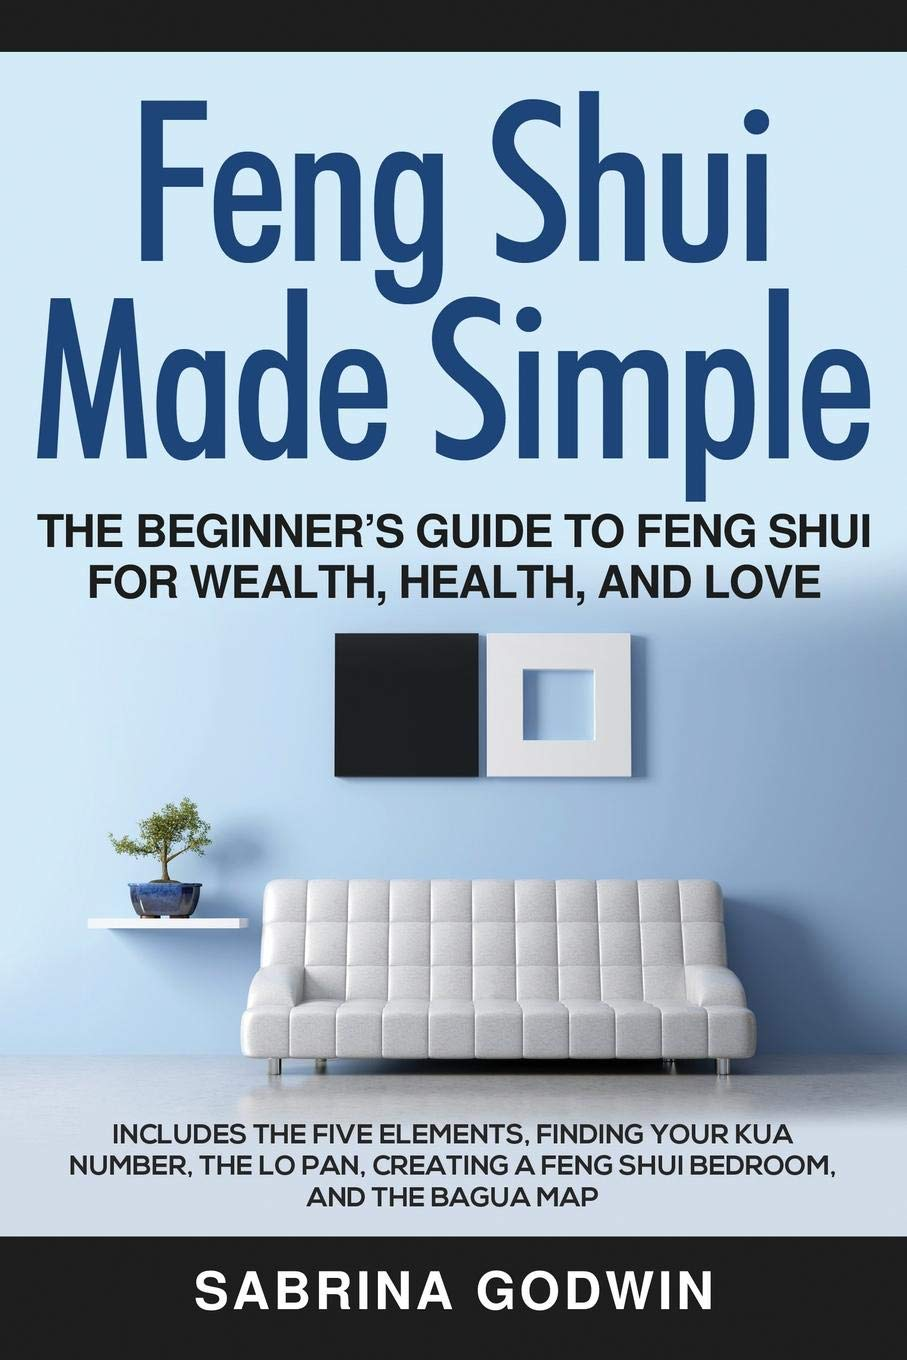 Astonishing Feng Shui Made Simple The Beginners Guide To Feng Shui Complete Home Design Collection Barbaintelli Responsecom